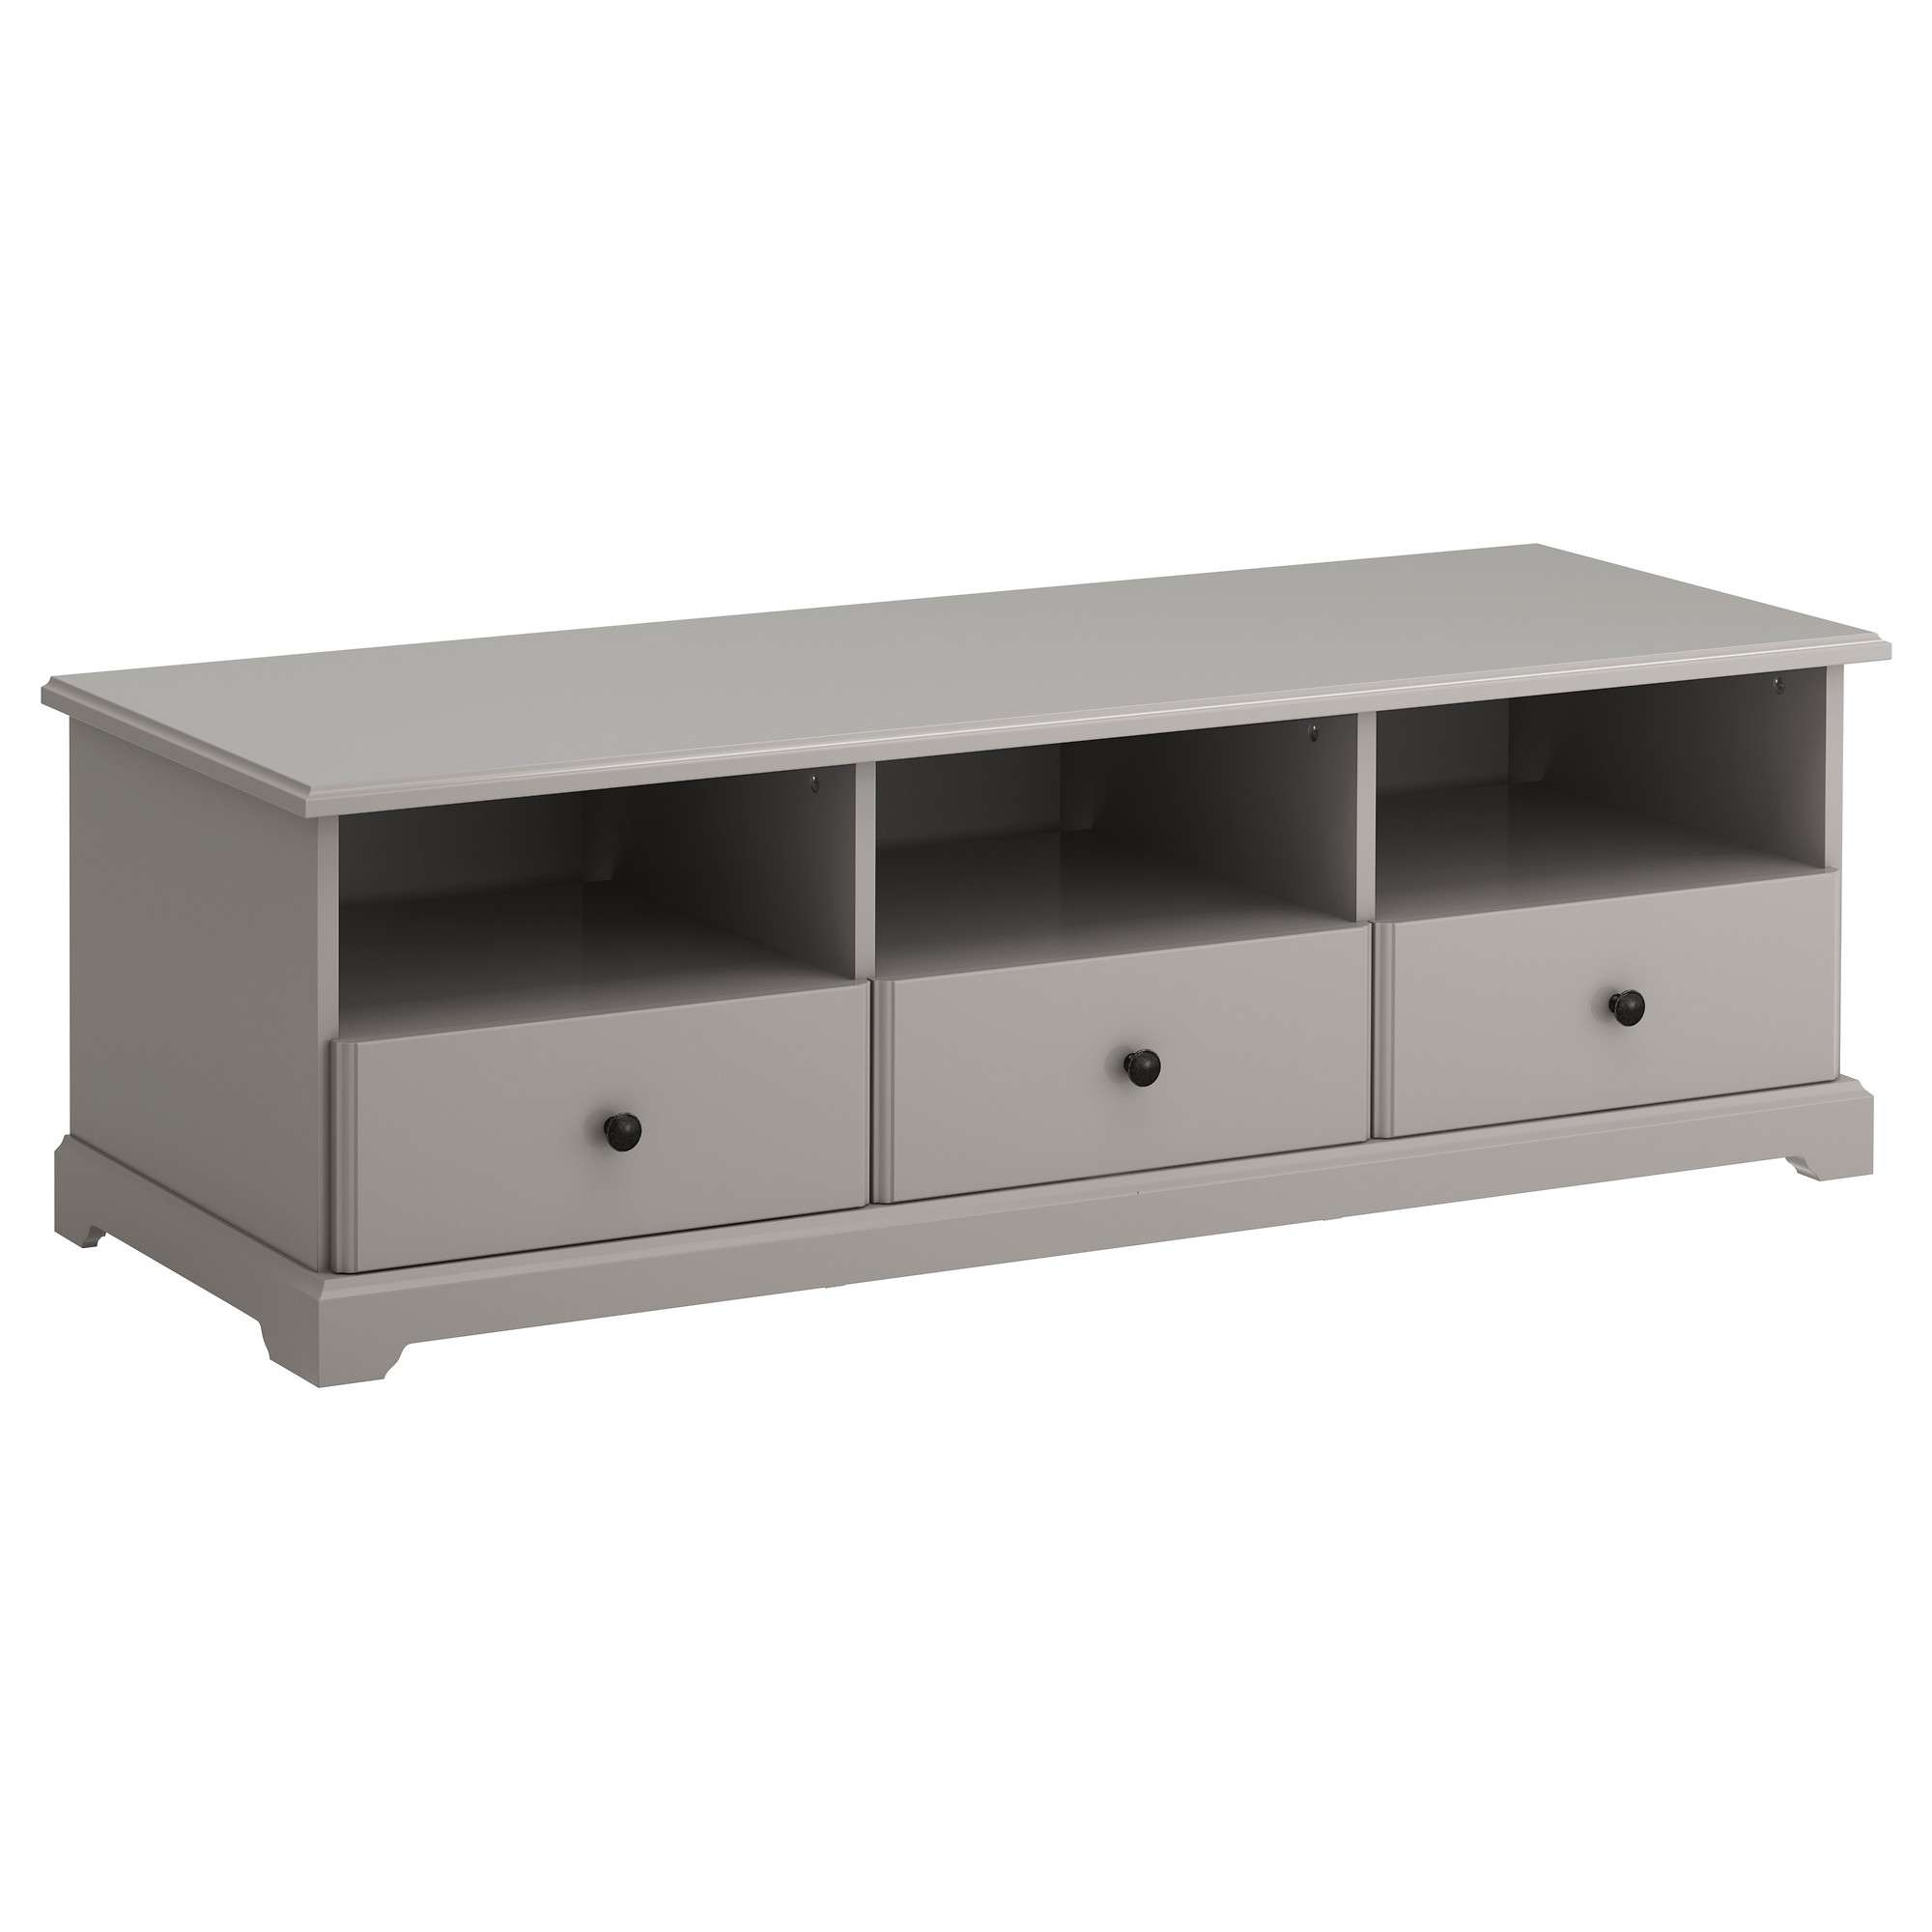 Tv Stands & Entertainment Centers – Ikea With Regard To Low Long Tv Stands (View 3 of 15)